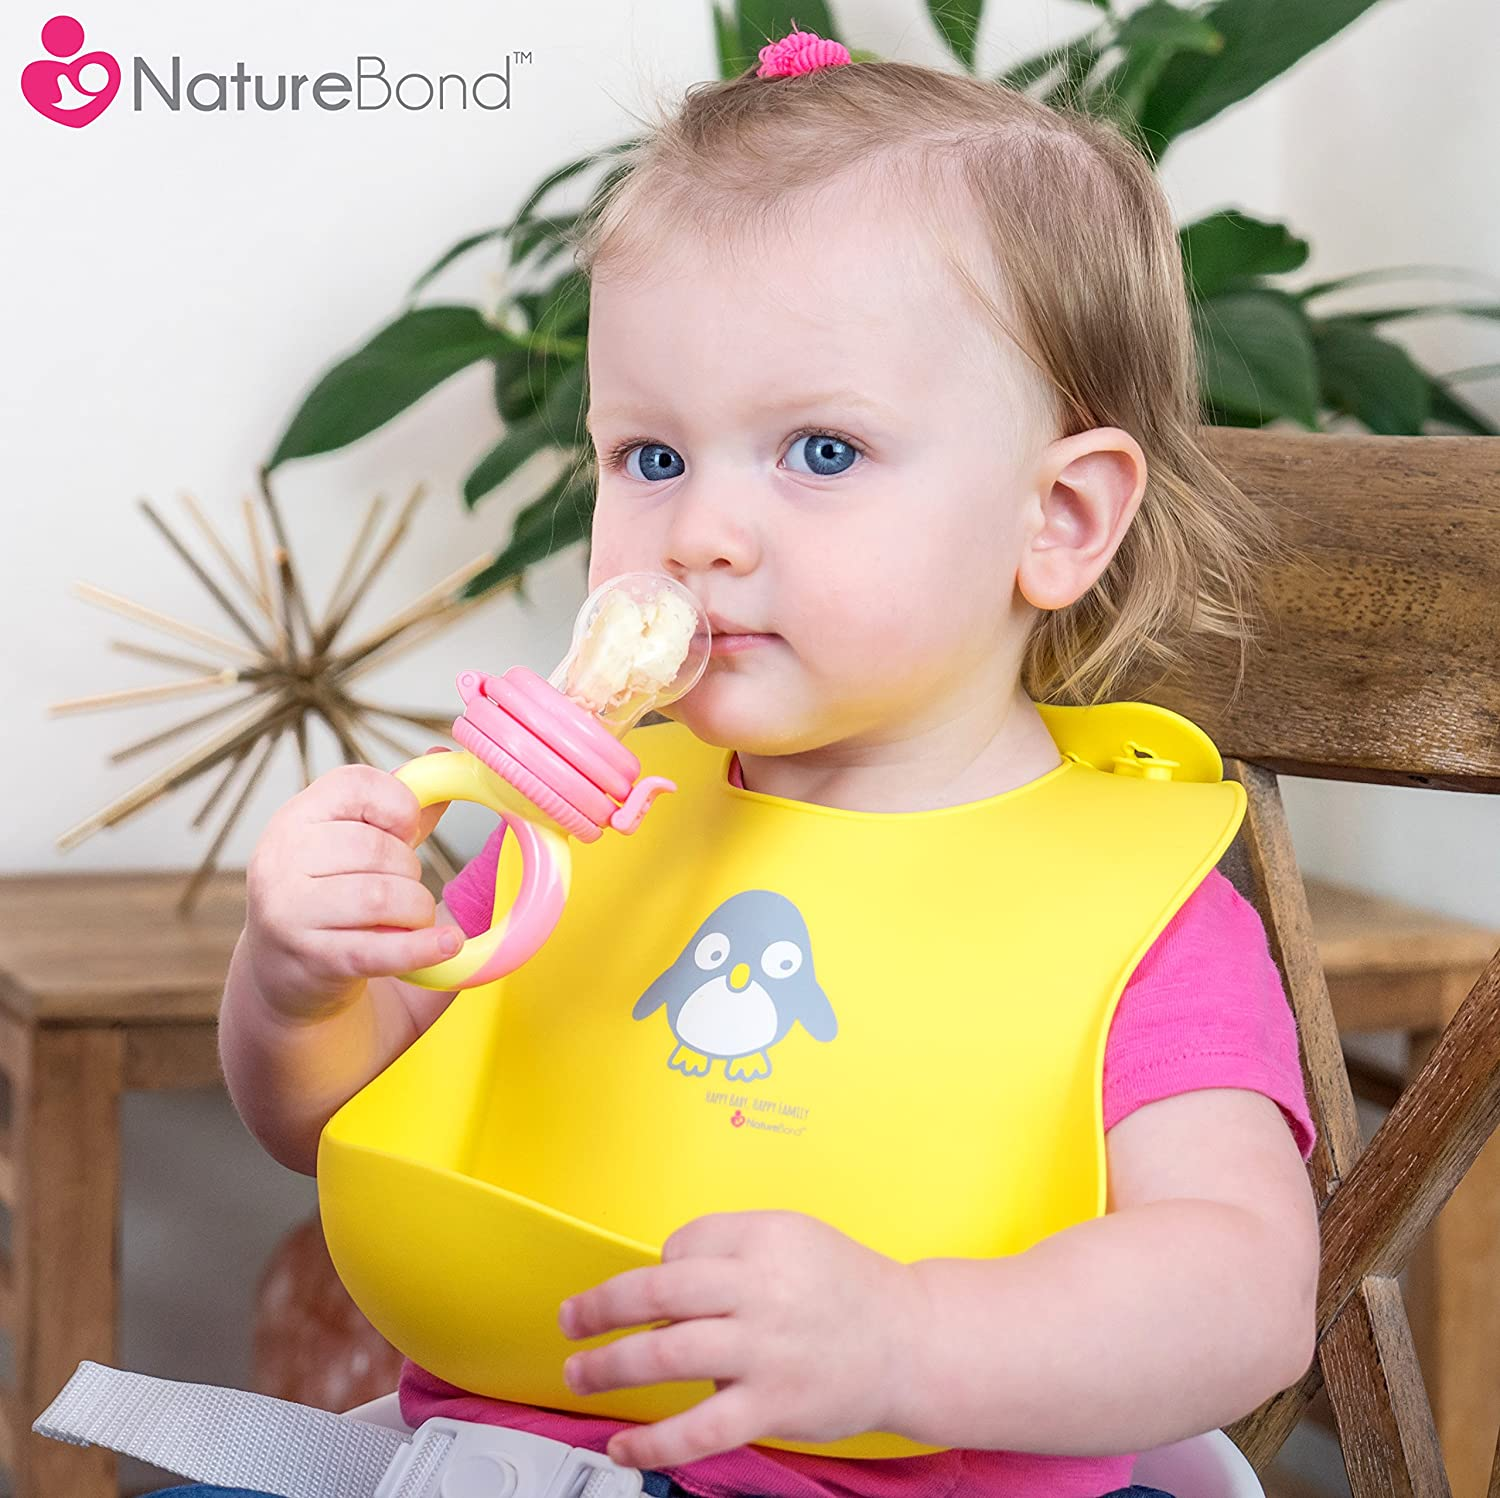 High Quality Adorable Perfect Baby Shower Gift Soft | Free Waterproof Pouch NatureBond Waterproof Silicone Baby Bibs for Babies /& Toddlers Unisex Wipes Clean Easily 2 PCs